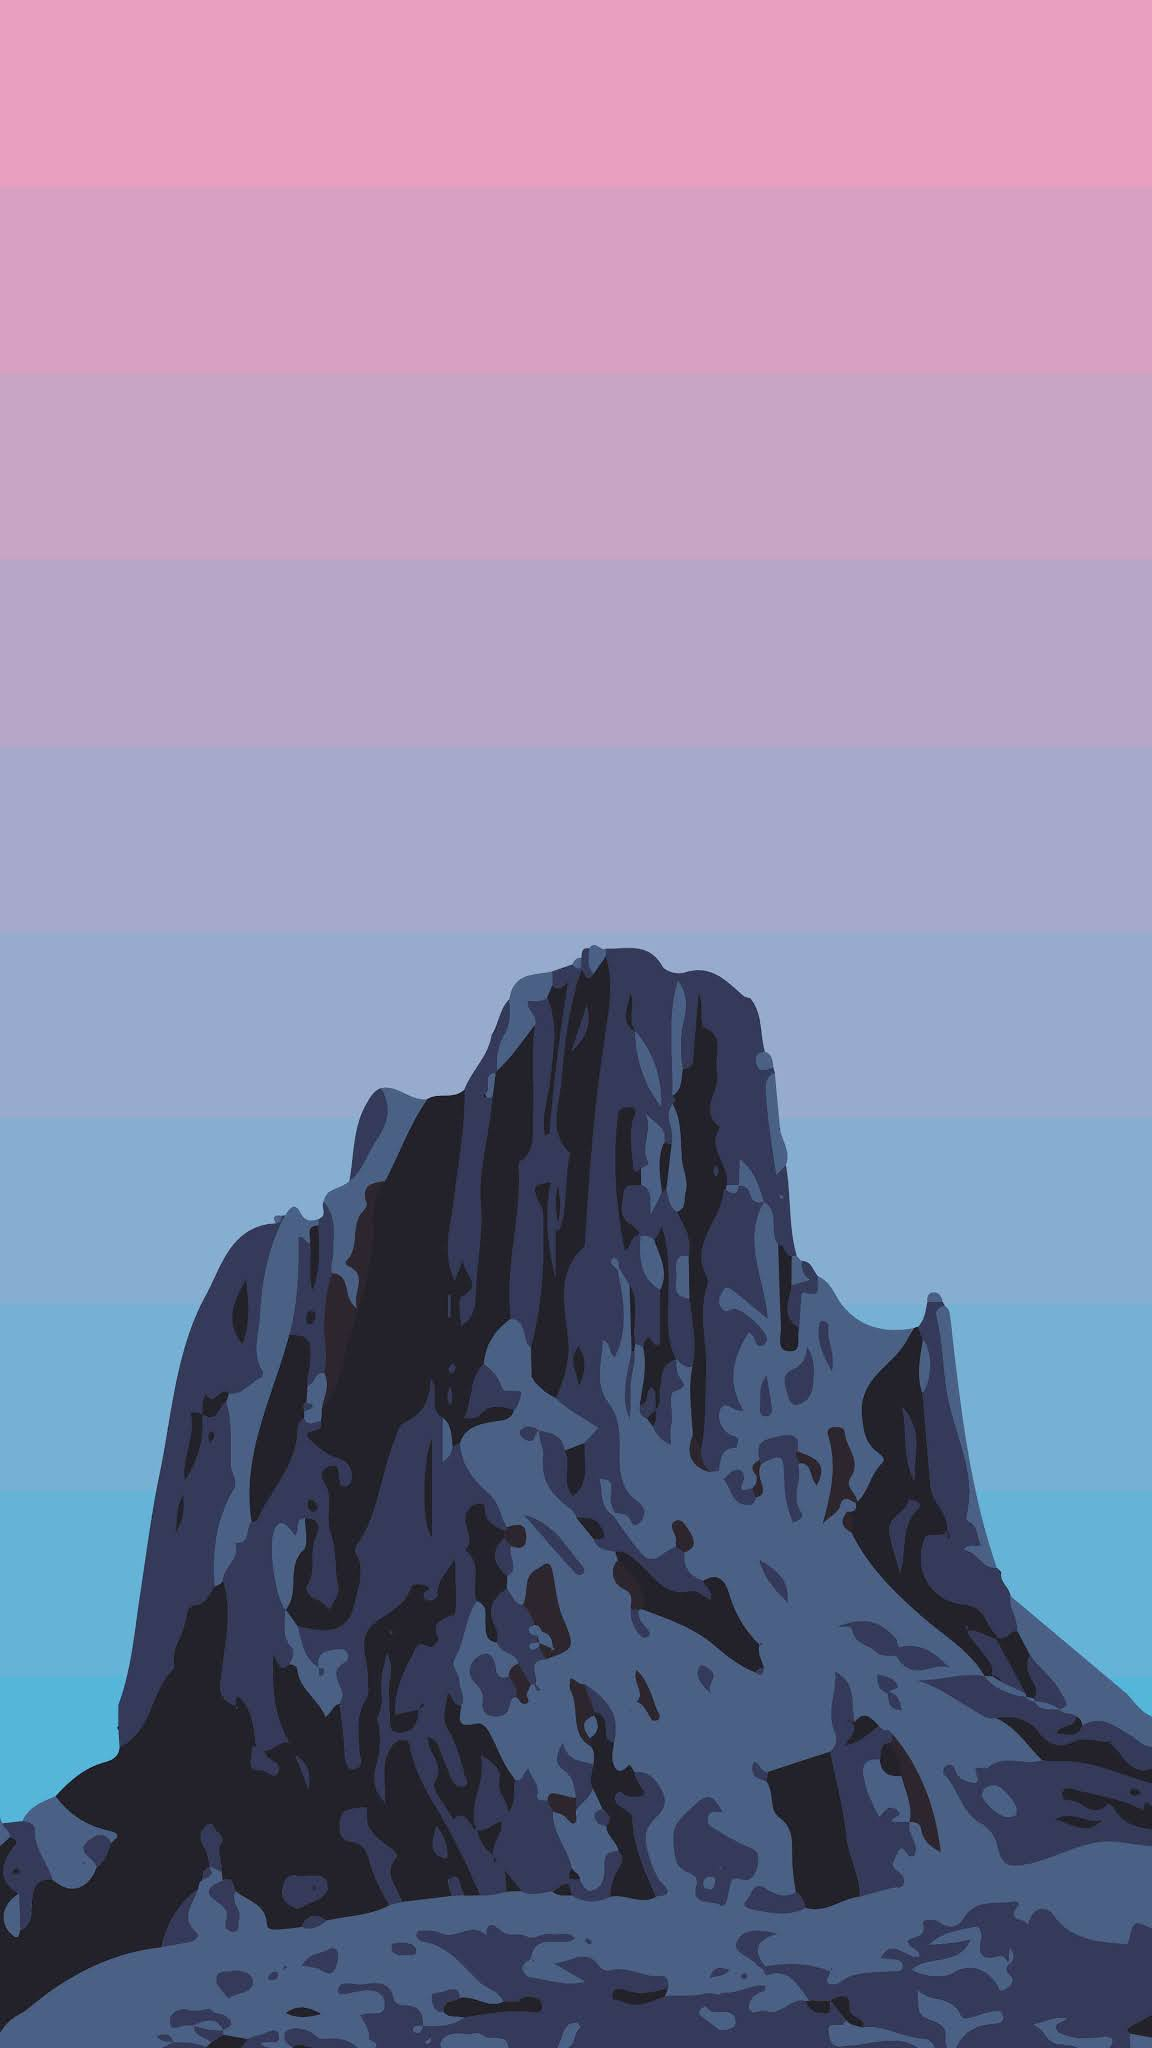 Beautiful minimalist mountain aesthetic wallpaper